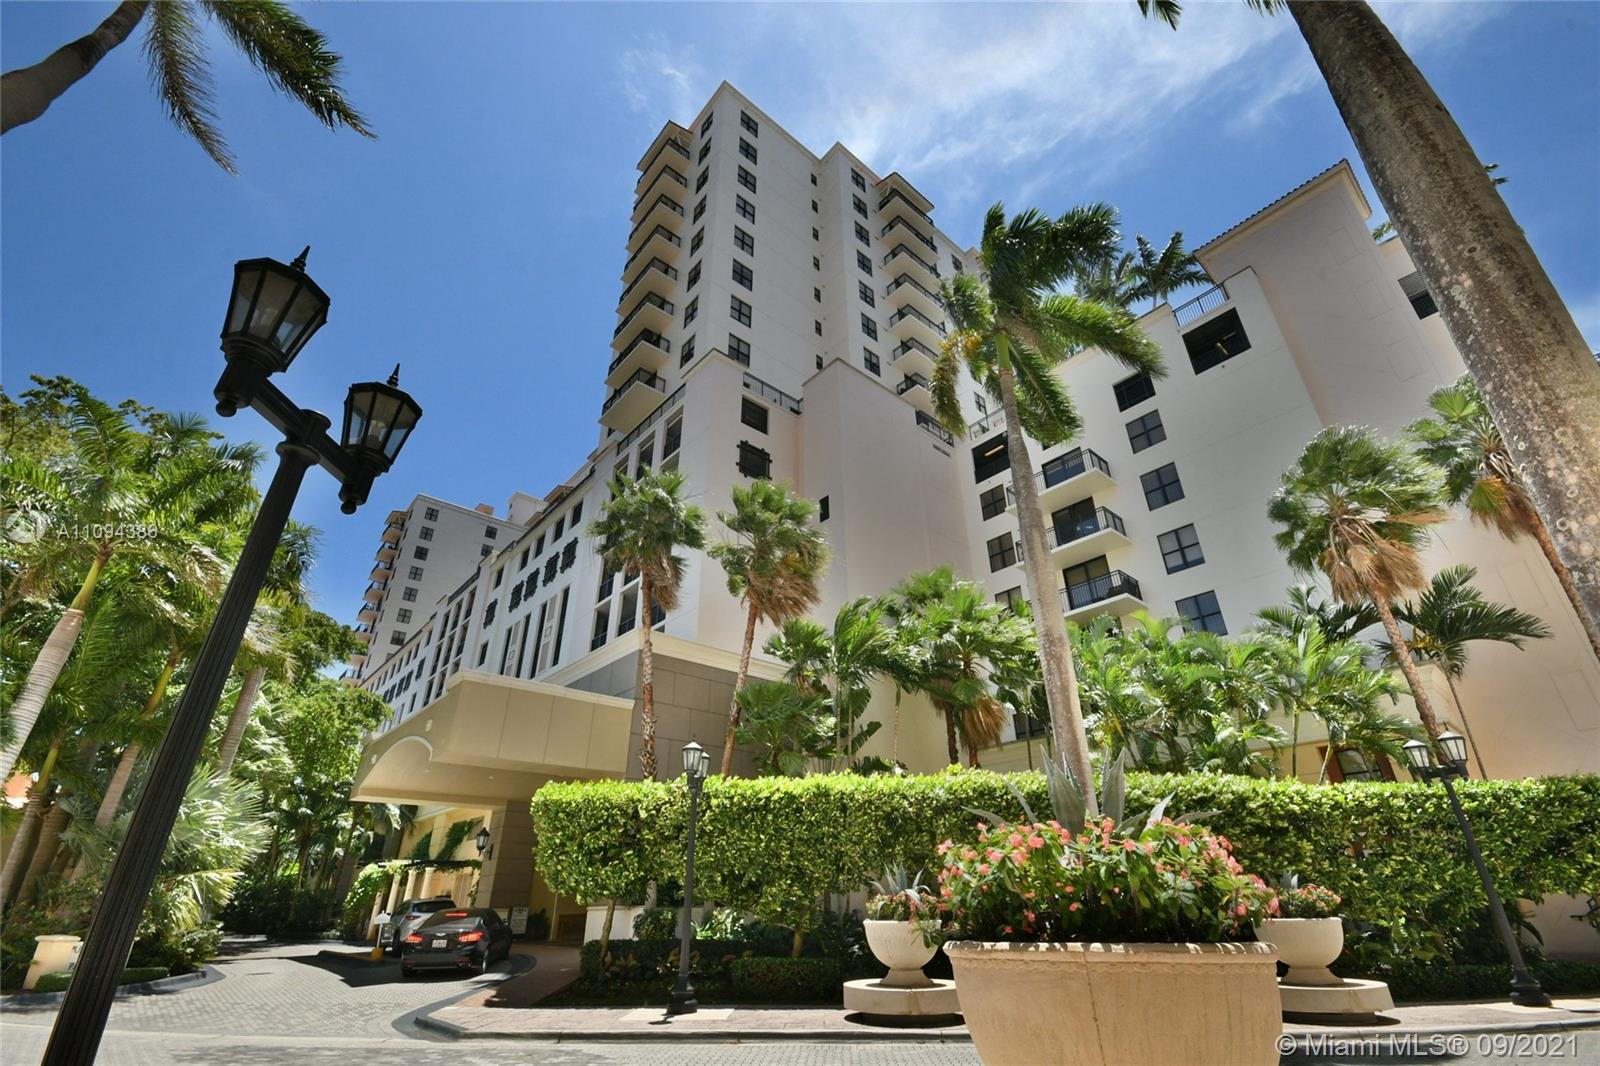 Welcome to the center of everything! This luxury condo in the heart of Coral Gables (Douglas Rd) has everything you need and most certainly want. The entire condo unit has a balcony for full enjoyment of all that Coral Gables has to offer. The building has the amenities you desire: Pool, Gym, Conference Space, Clubroom, valet parking. The condo has 3 bedrooms and 2 bathrooms; wood and carpet floor, with granite counters, top with stainless steel appliances.